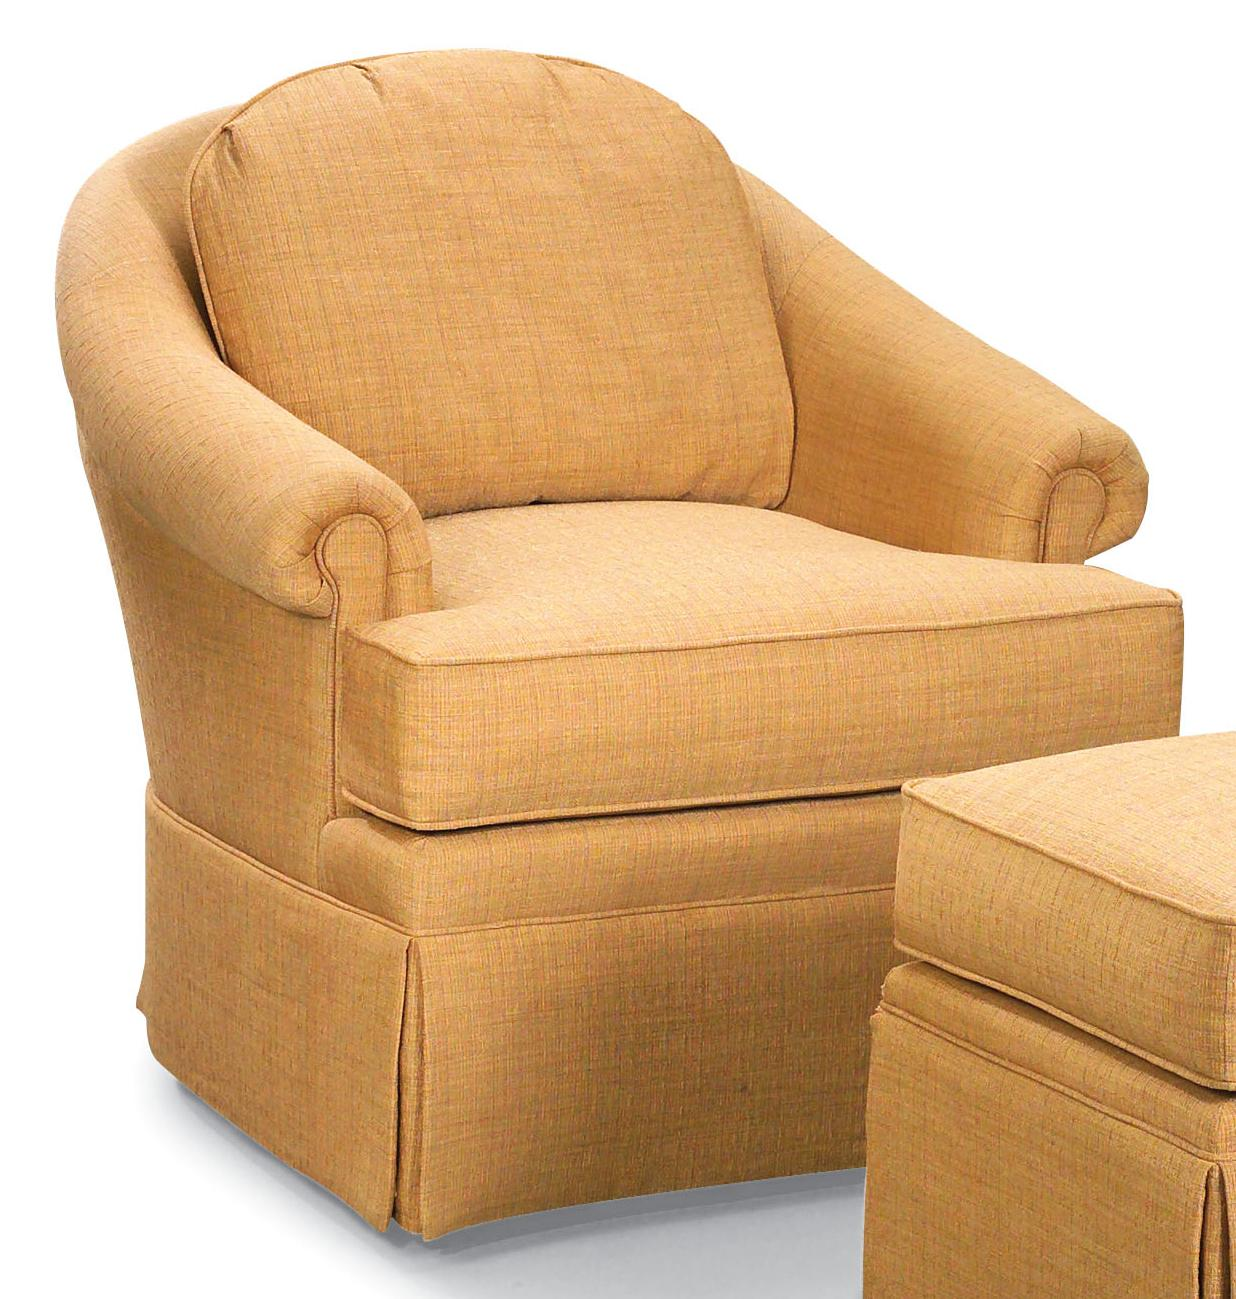 Fairfield Chairs Fairfield Swivel Accent Chairs Swivel Barrel Chair With Rolled